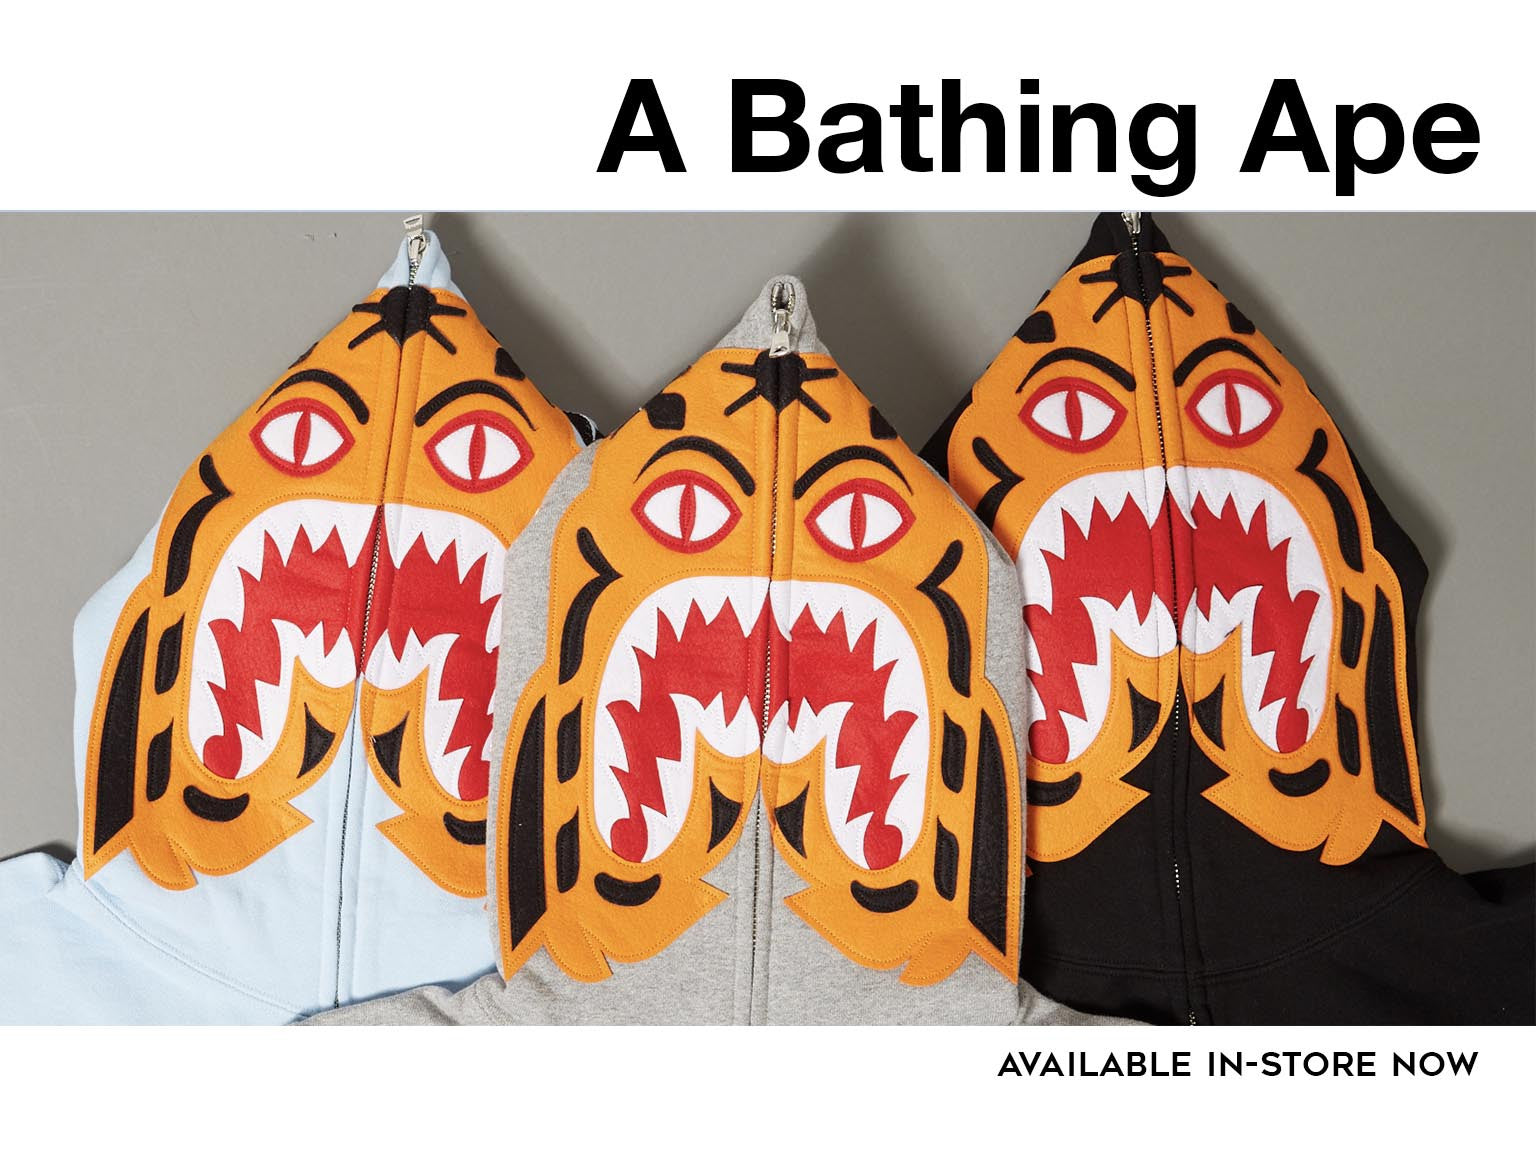 New at UNKNWN: A Bathing Ape In-Store Only